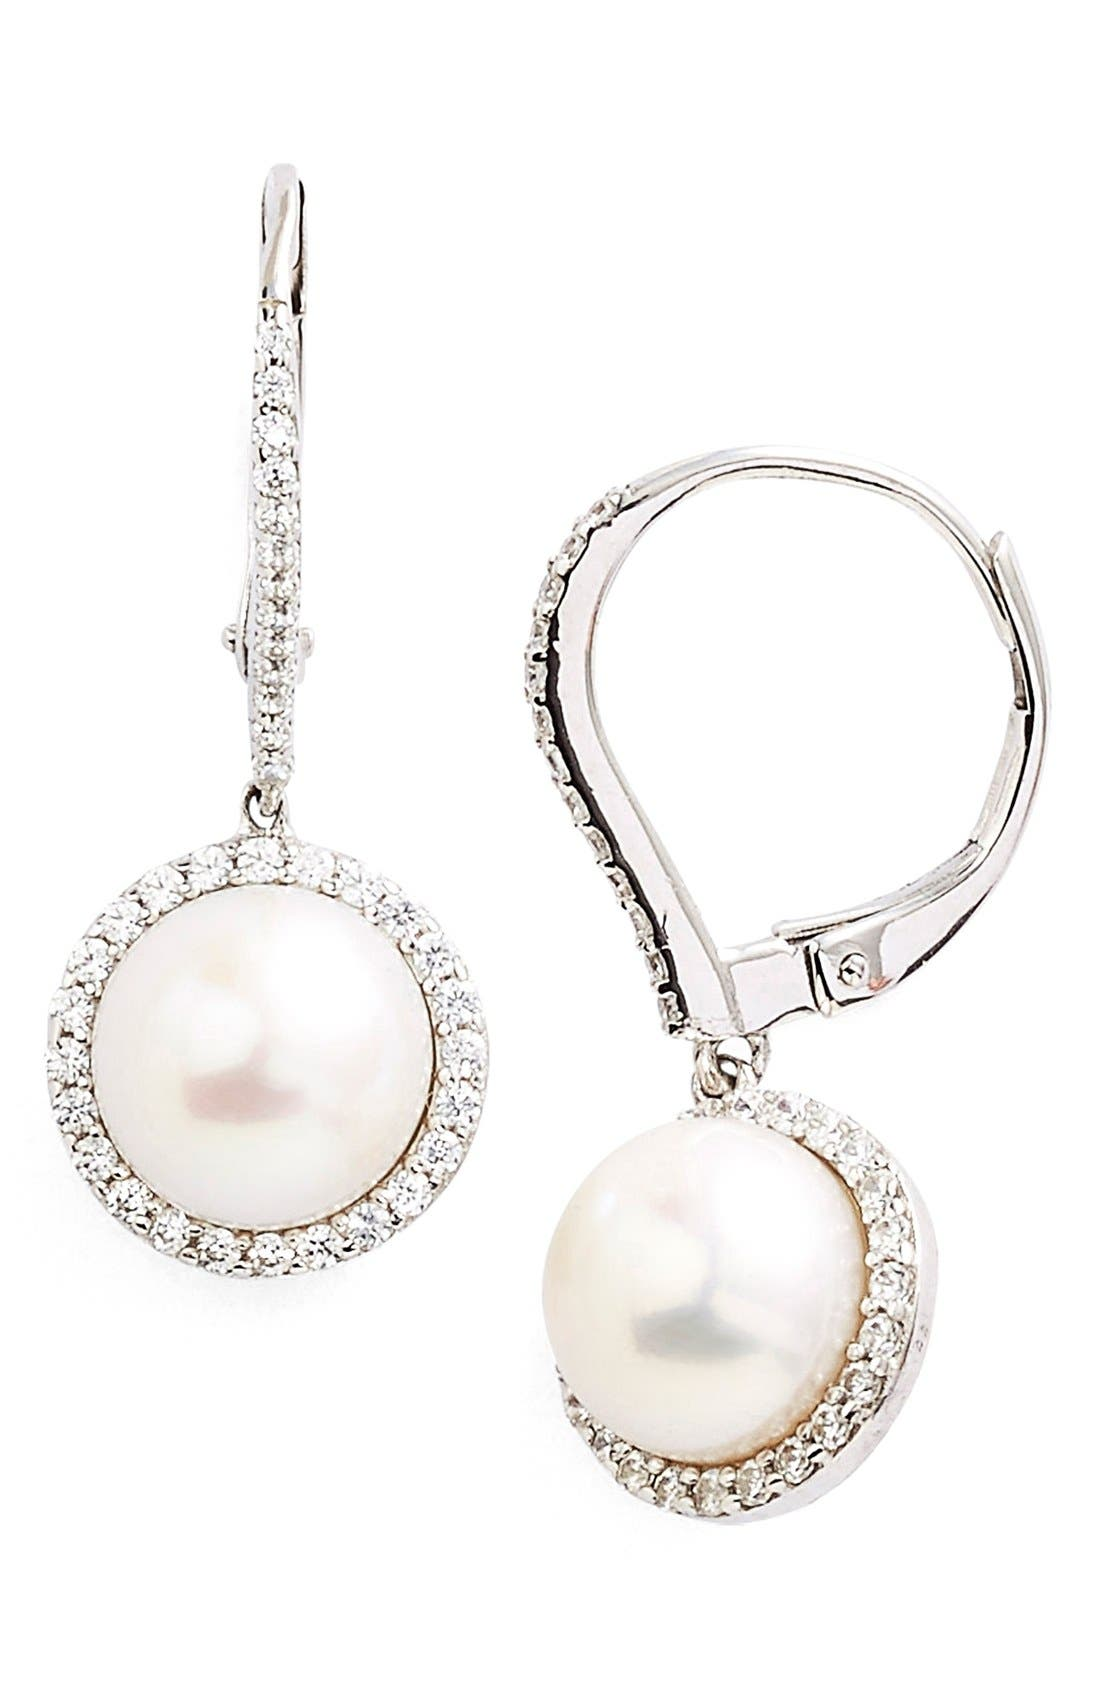 'Lassaire' Pearl Drop Earrings,                         Main,                         color, Silver/ Clear